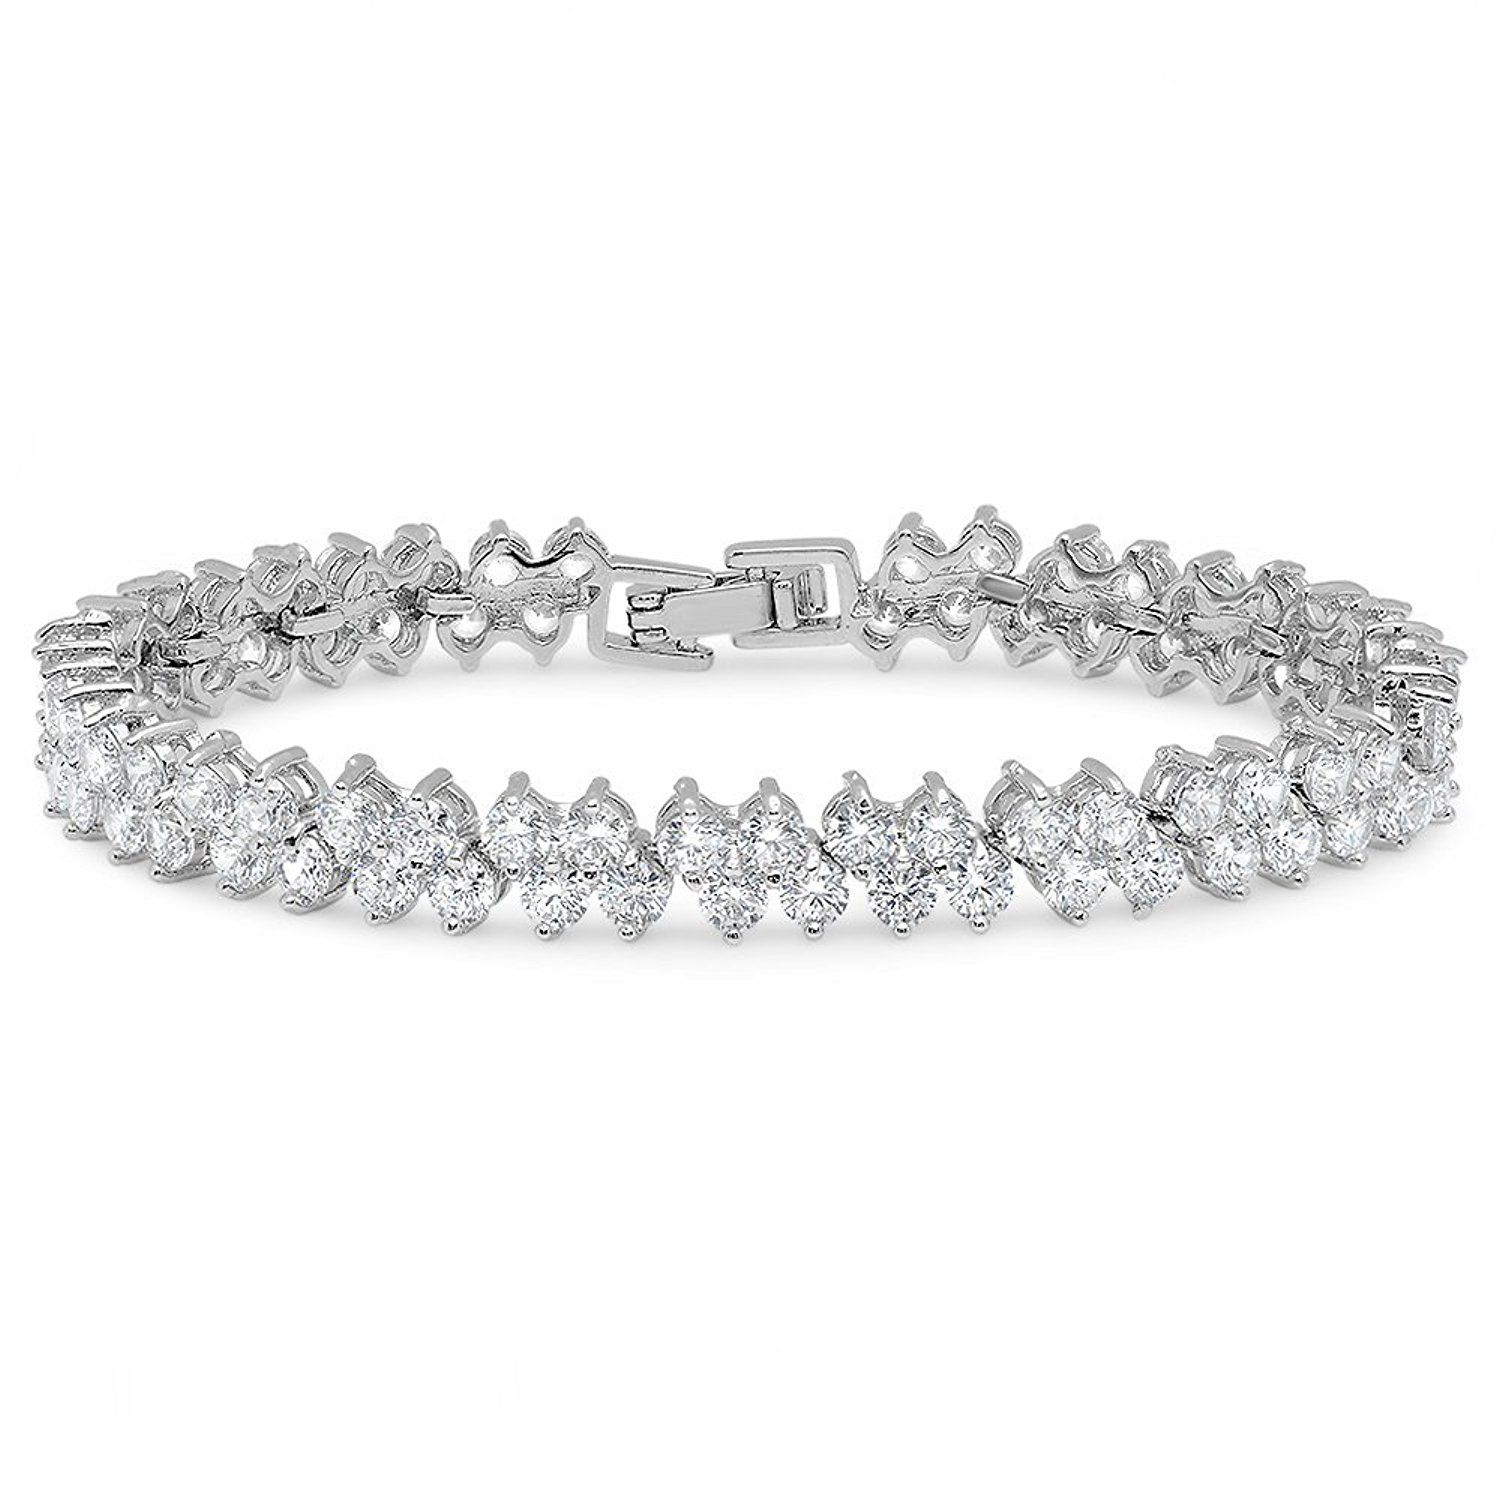 Steeltime womenus k white gold plated cz cluster tennis bracelet